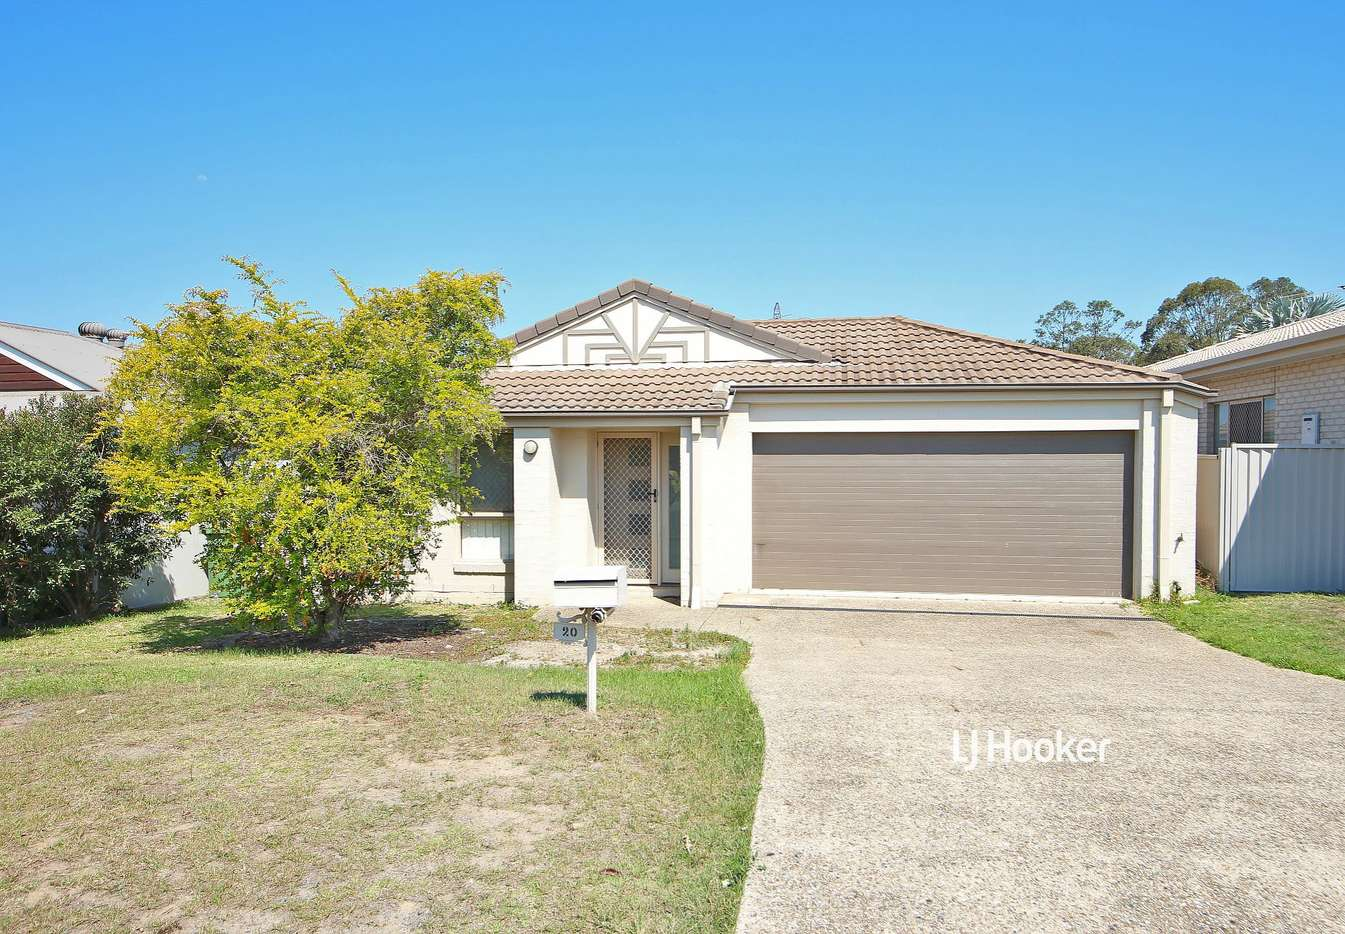 Main view of Homely house listing, 20 Bottle Tree Crescent, Mango Hill, QLD 4509